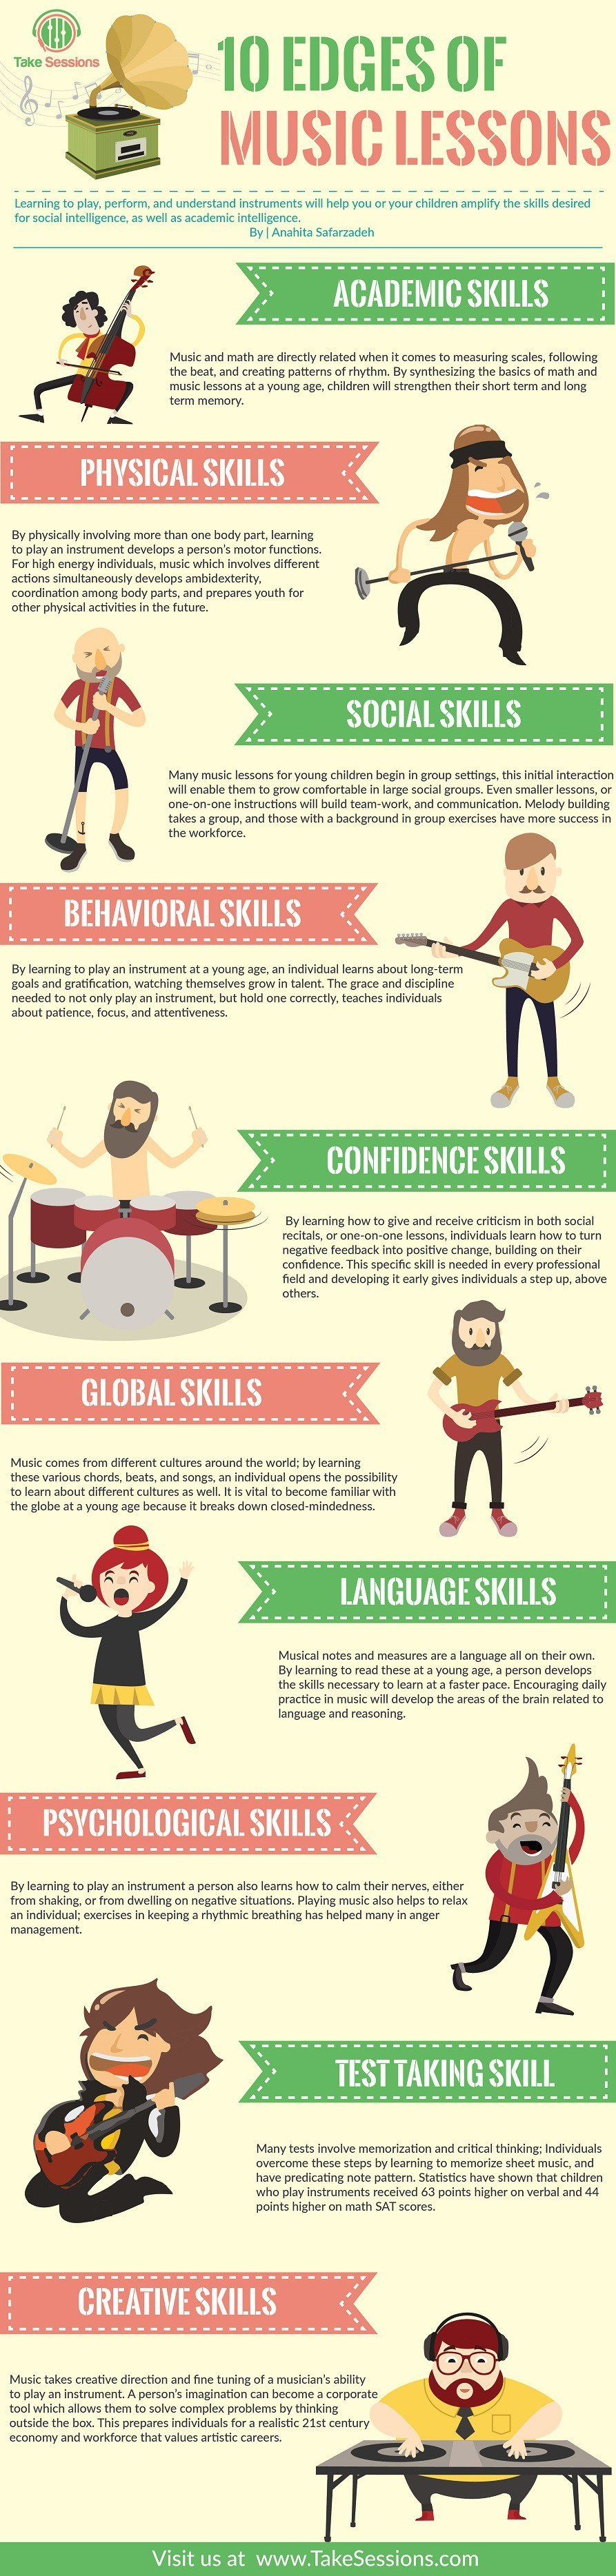 10 Edges of Music Lessons Infographic